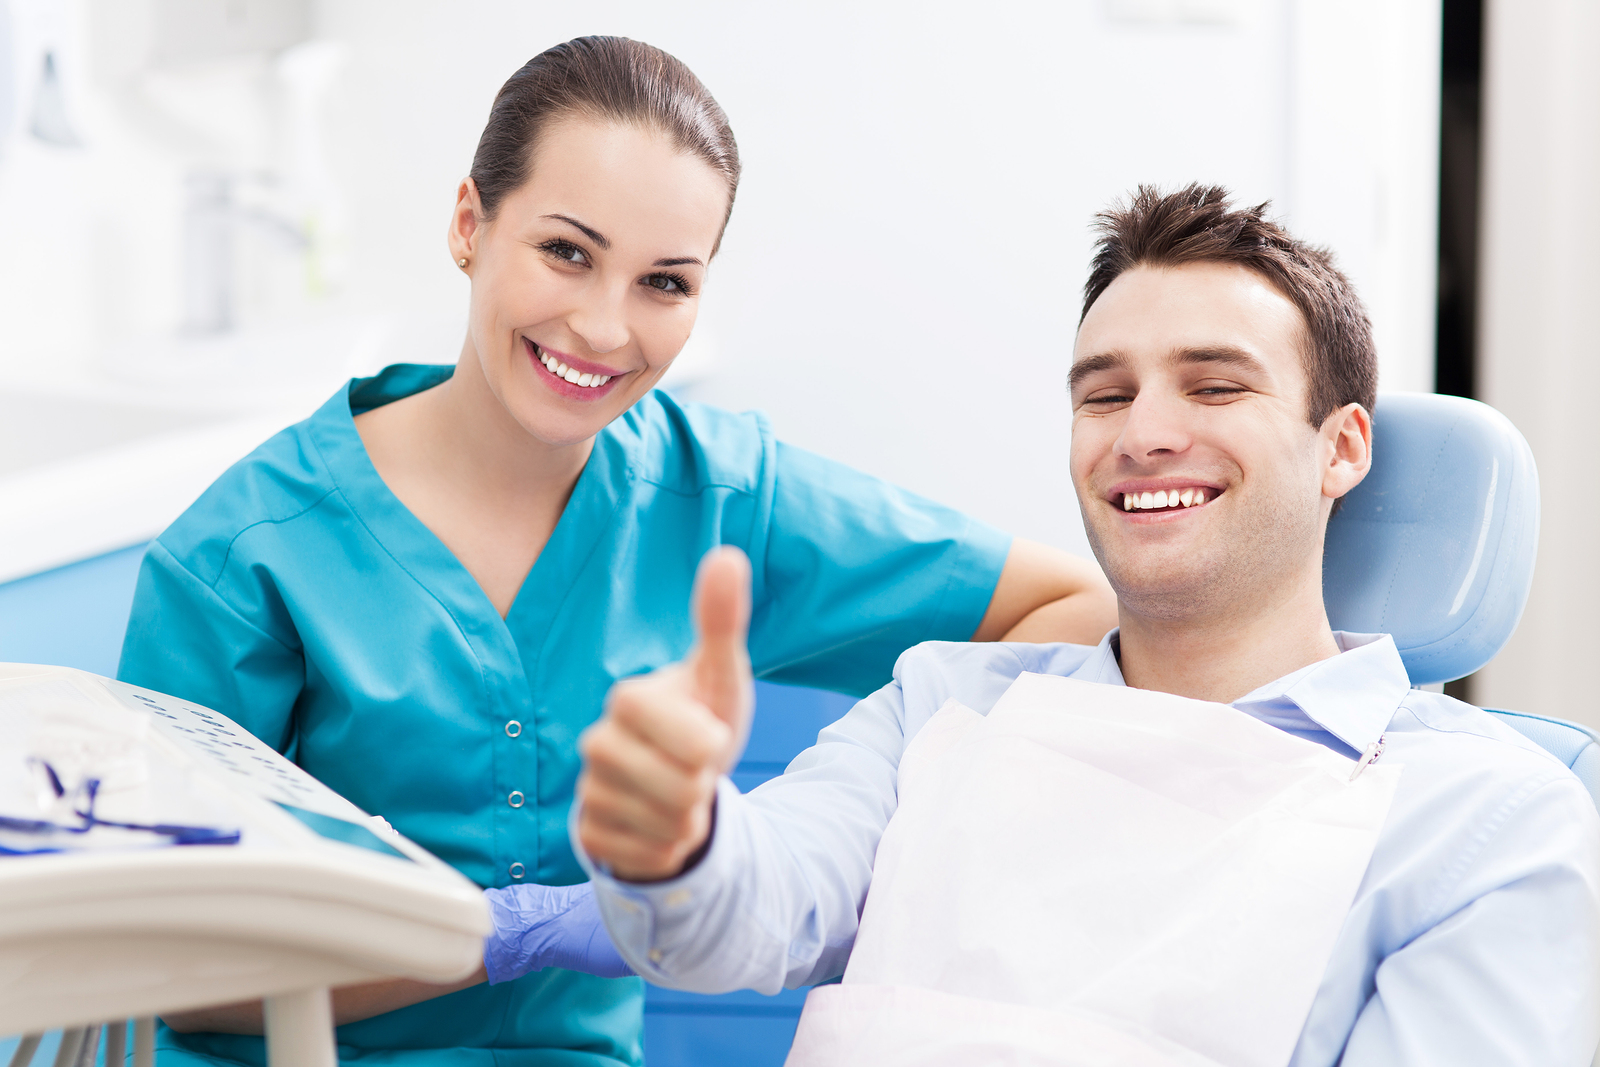 5 common misconceptions about wisdom teeth removal